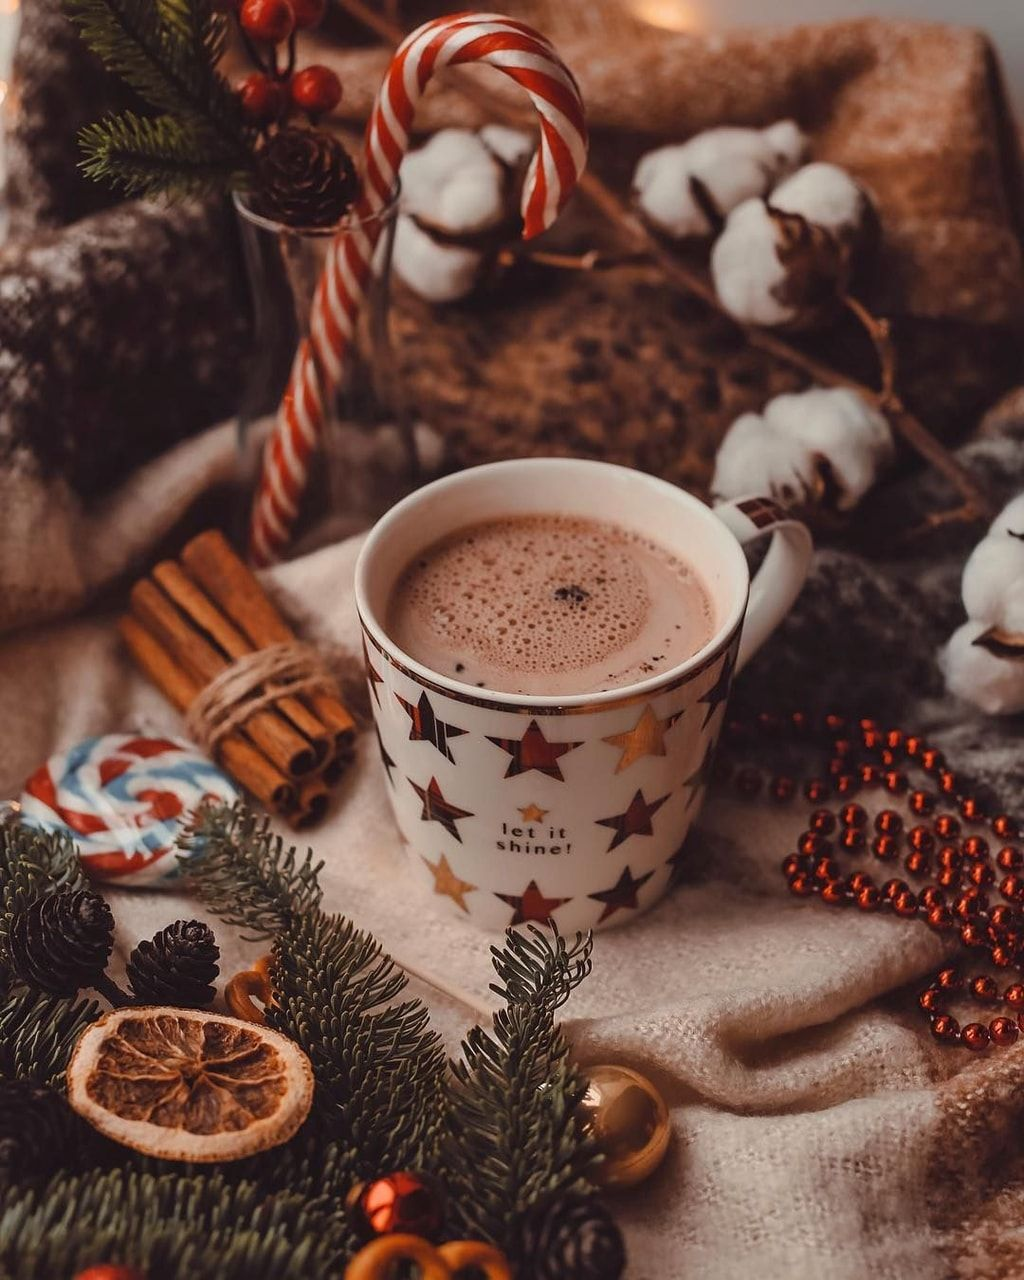 Uploaded by hannijr746. Find images and videos about winter, christmas and drink on We Heart It - the app to get lost in what you love.